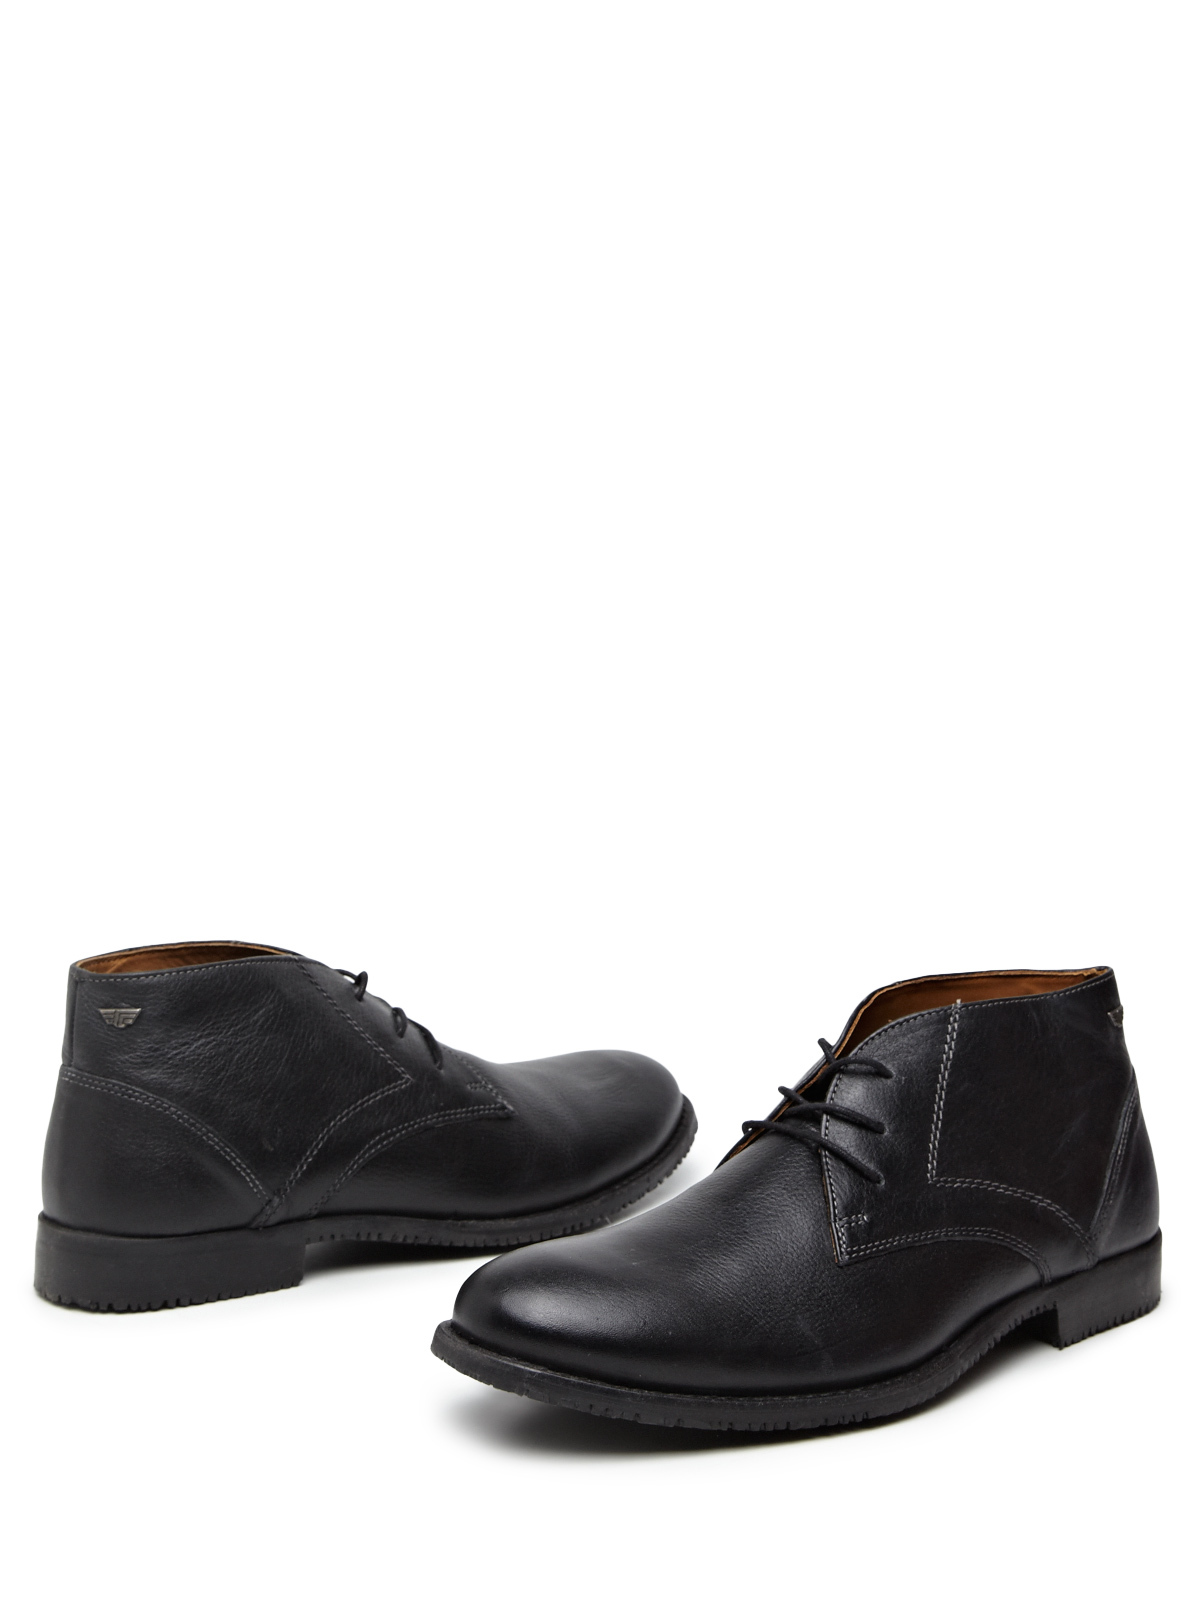 Redtape Formal Textured Lace Up Shoes (Black)